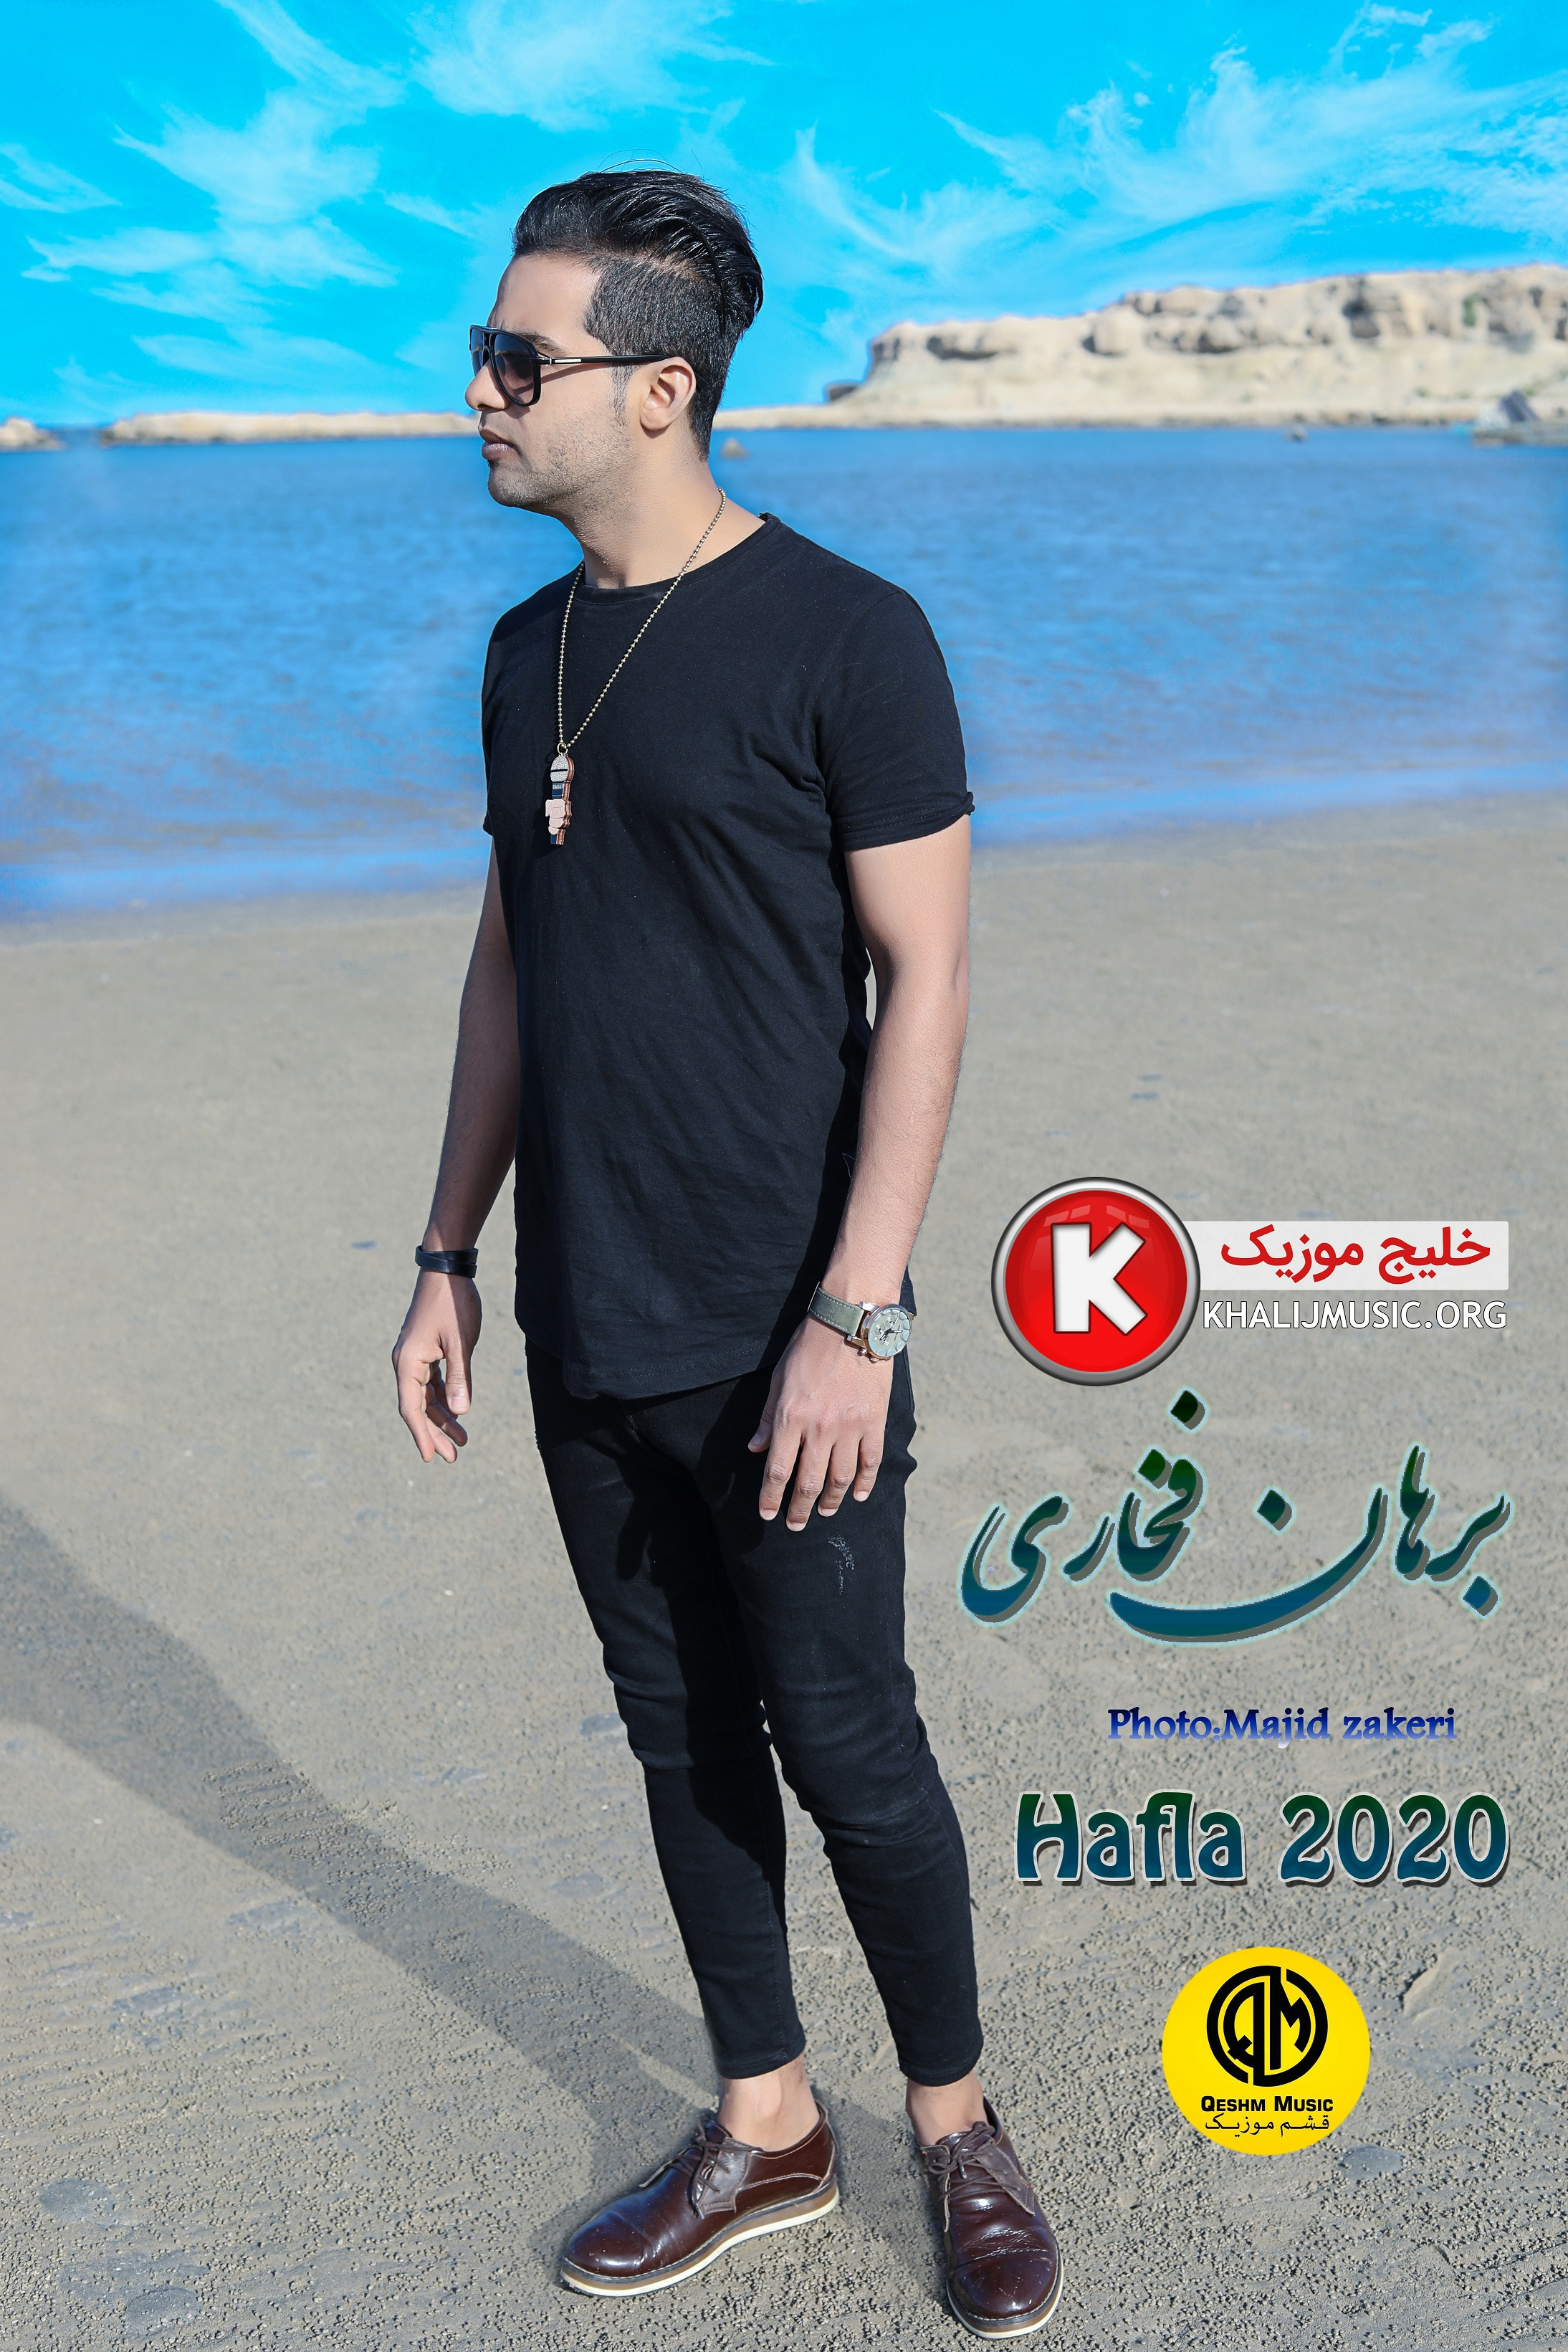 http://dl2.khalijmusic.us/ax/photo_2020-04-01_03-14-90.jpg